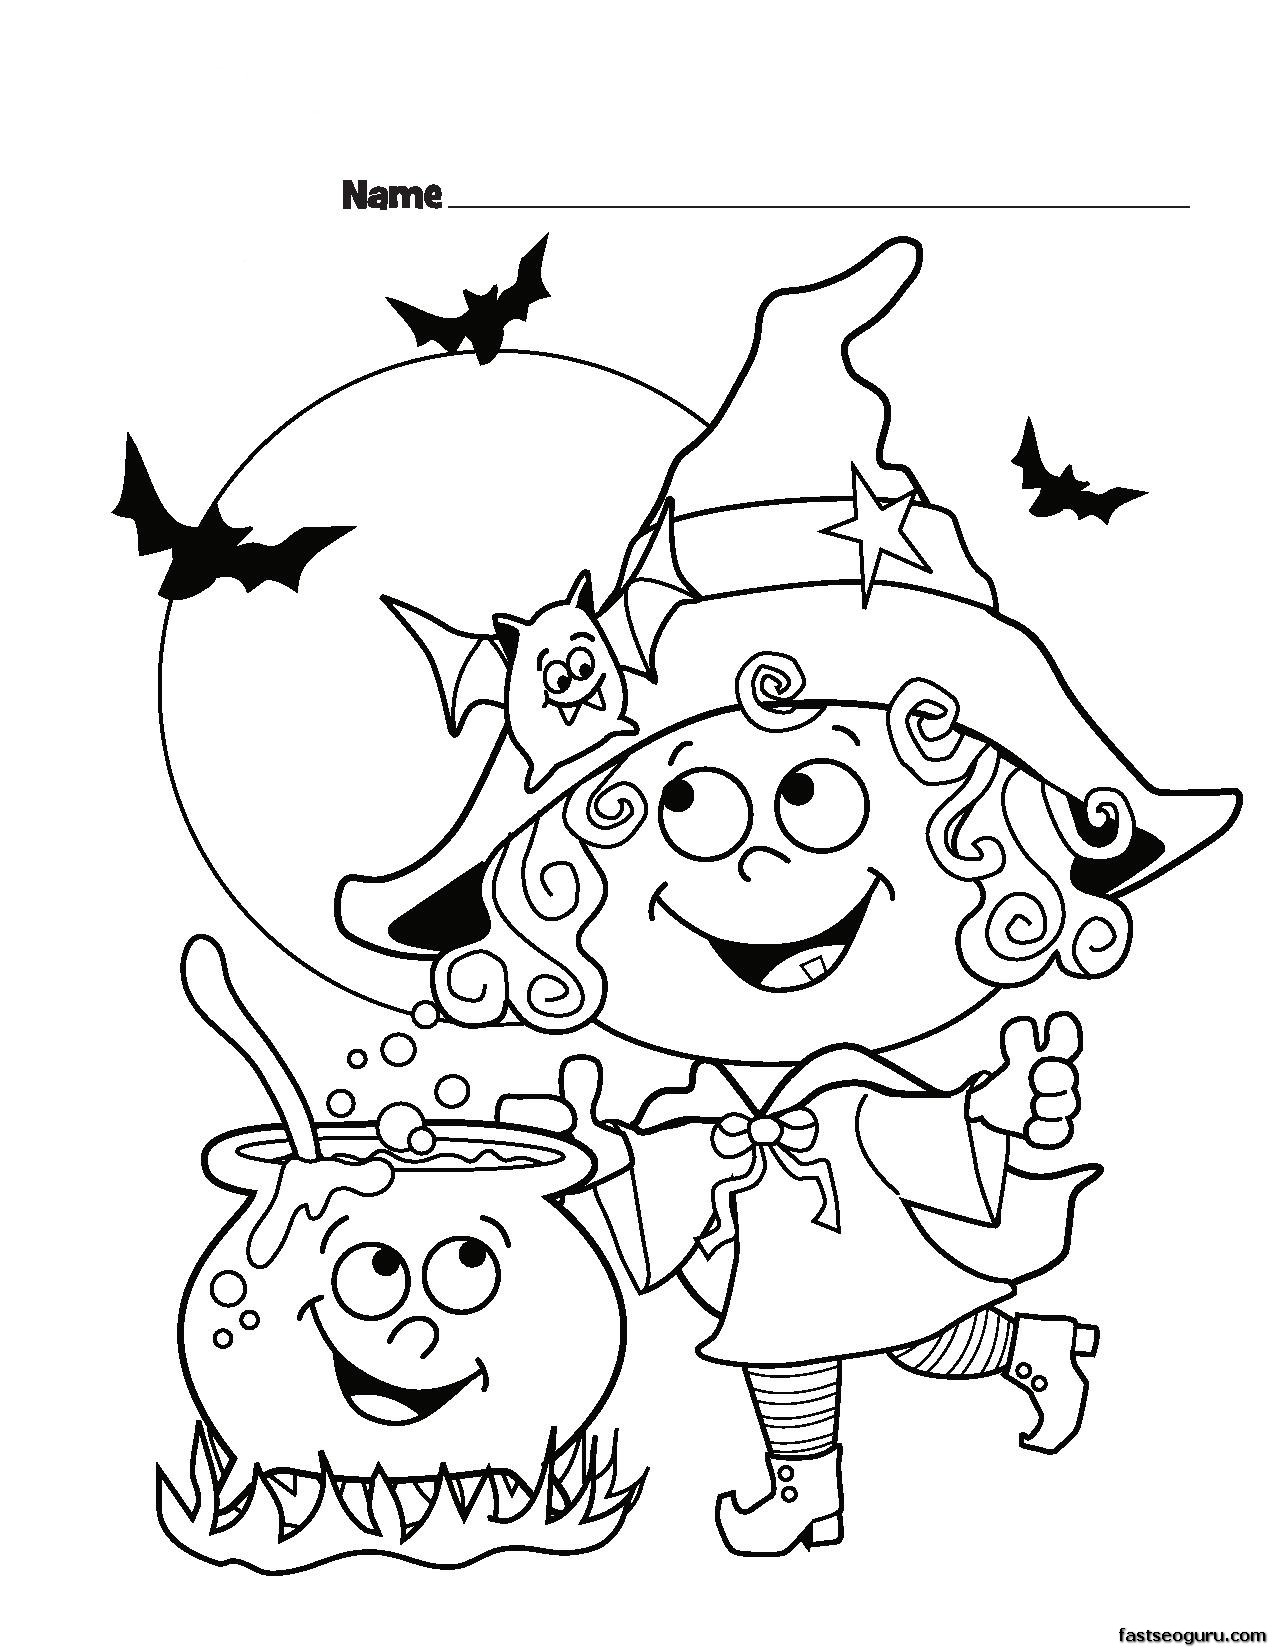 coloring pages color by number color by number easy printable picture meadow coloring coloring number color pages by